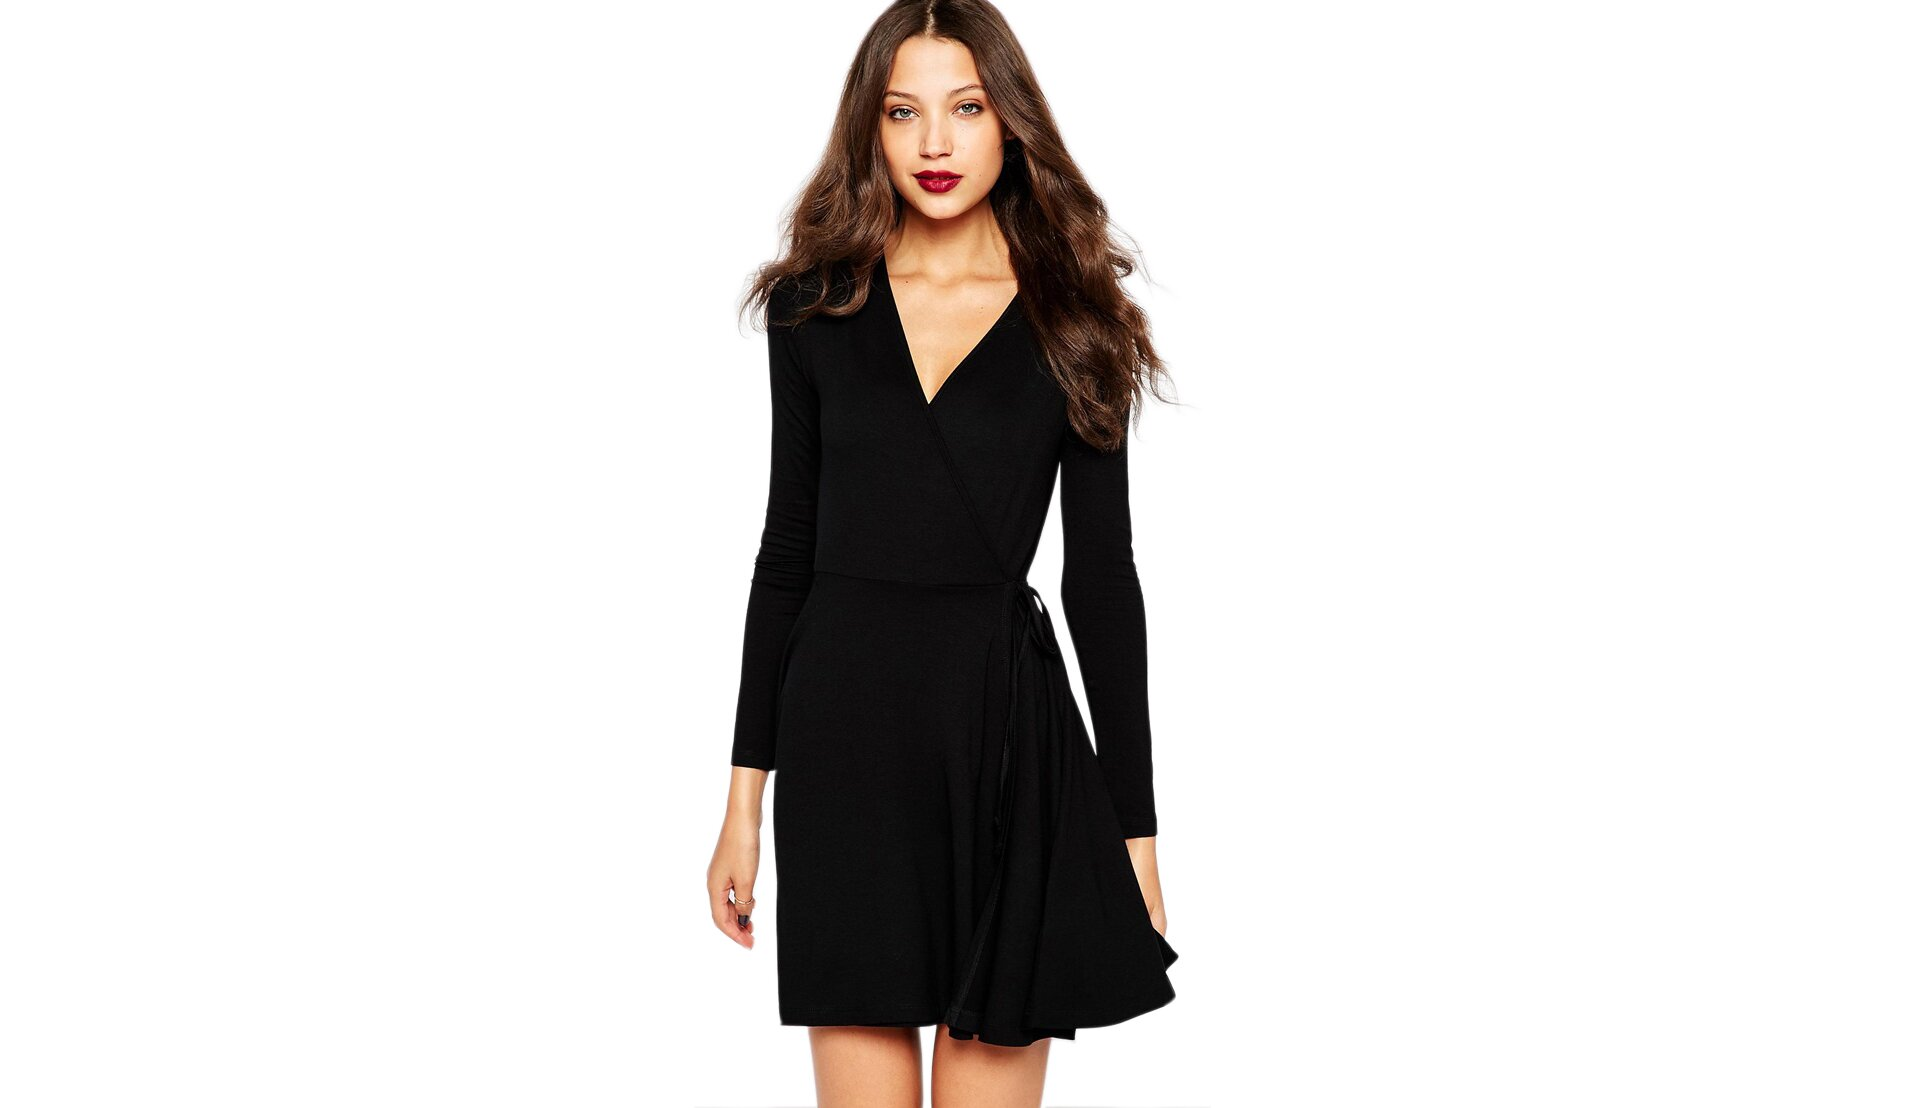 A Flattering Little Black Dress For Every Body Type